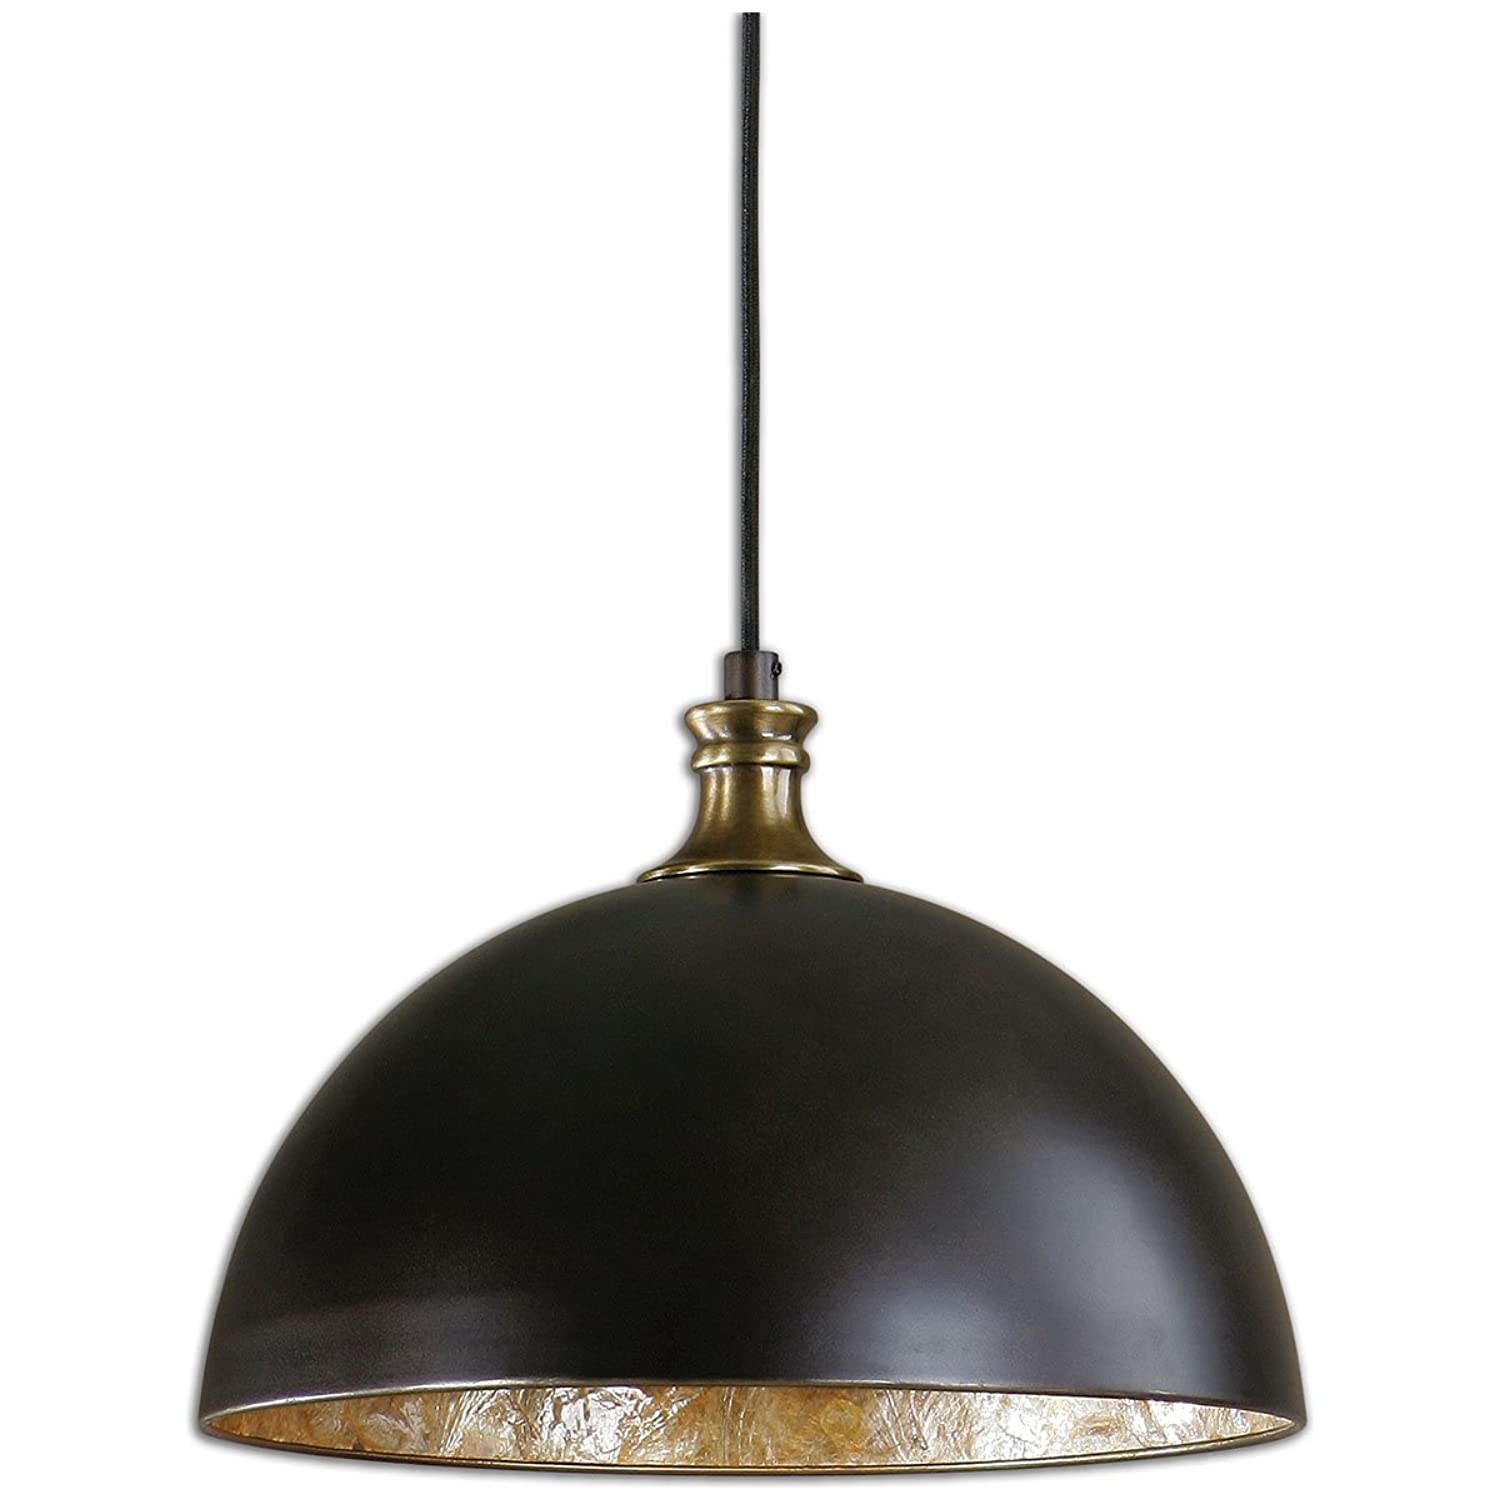 Uttermost 22028 Placuna 1 Light Pendant, Bronze by Uttermost